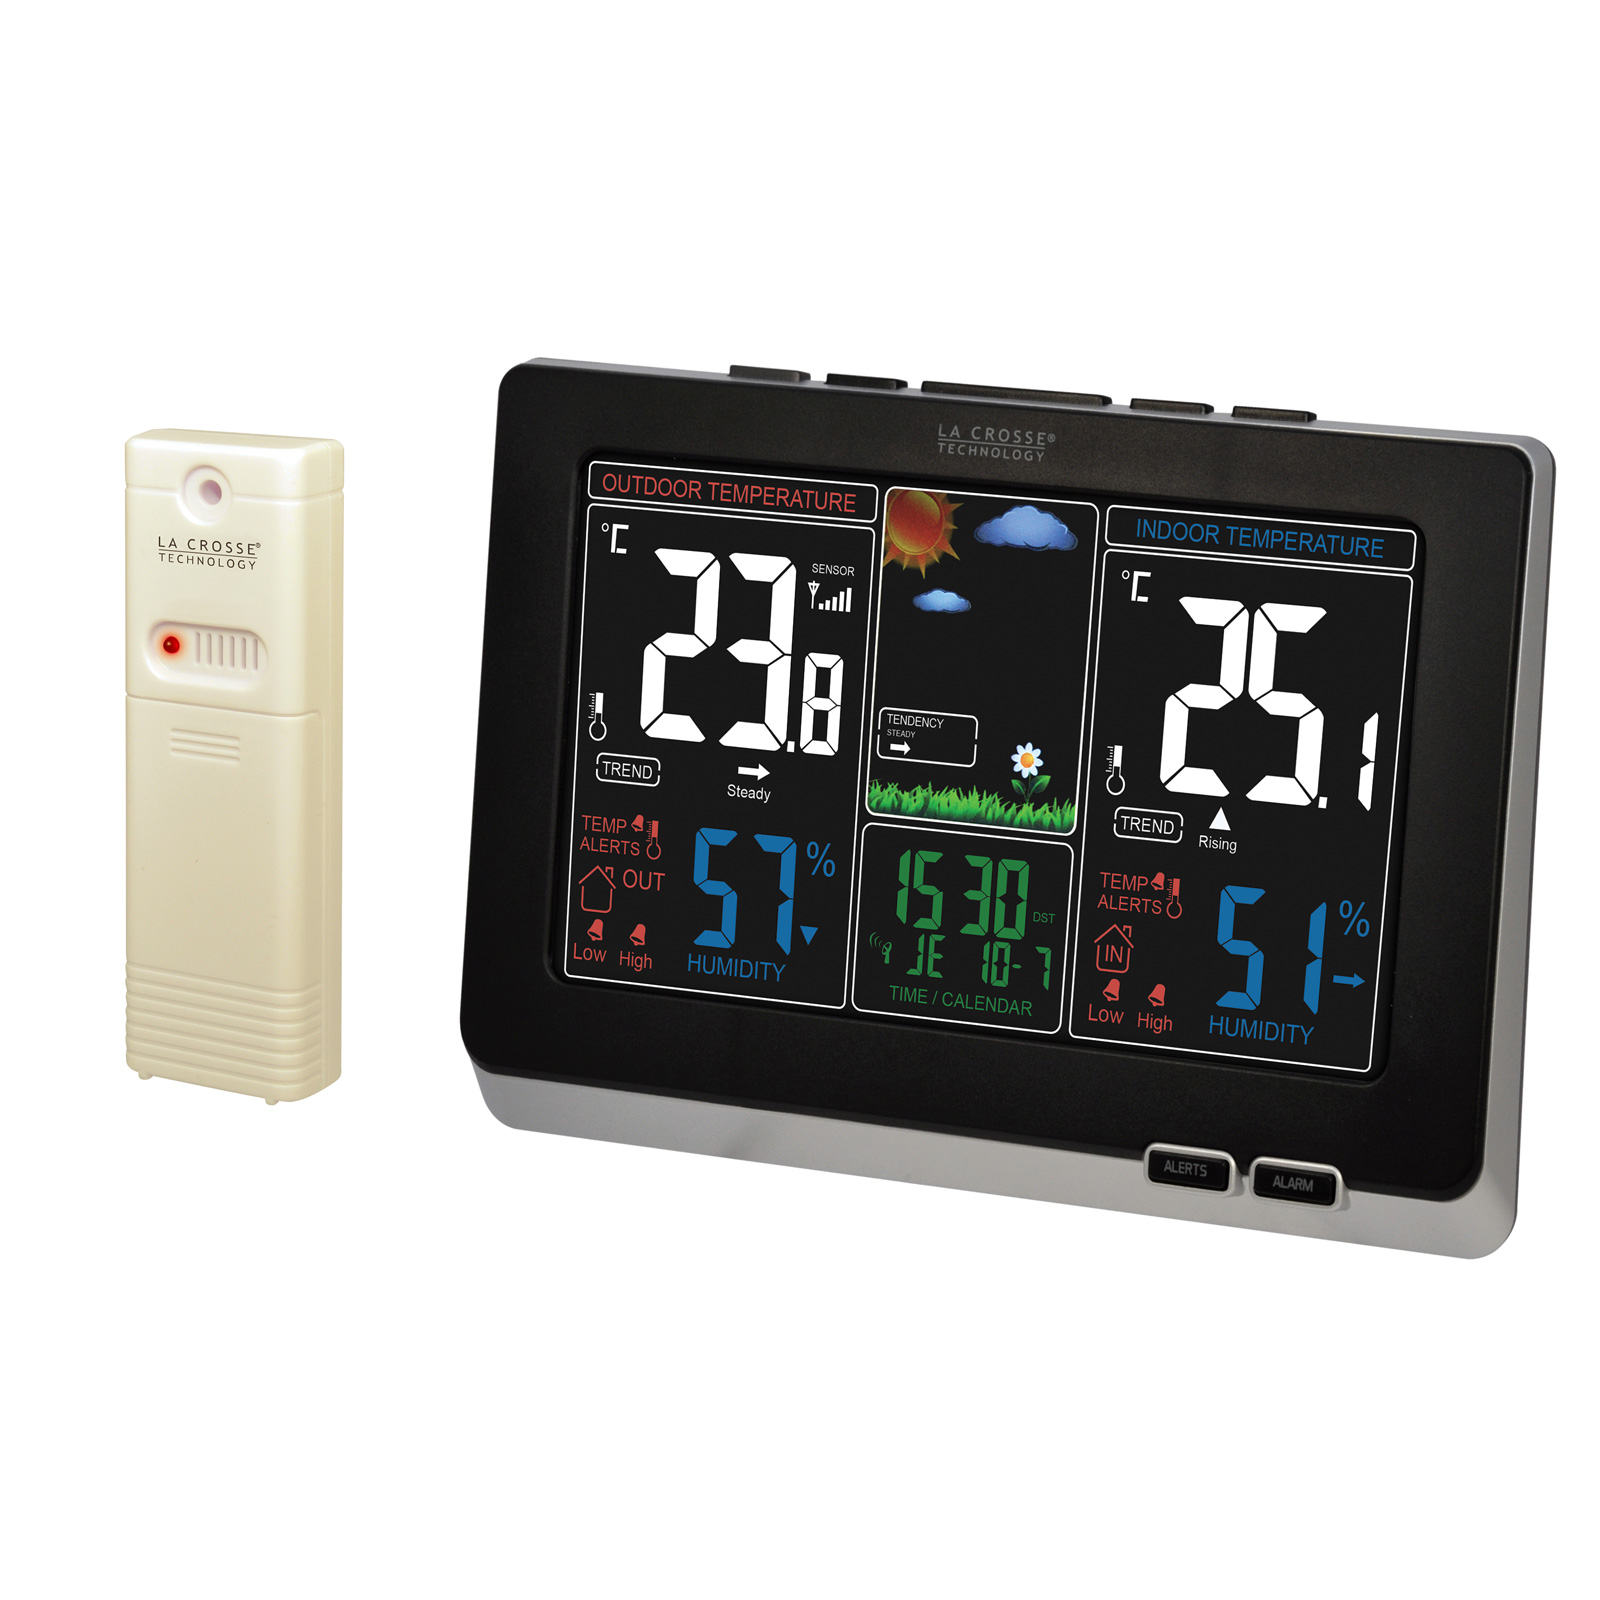 La crosse technology ws6828 bla station m t o la crosse for Station meteo temperature interieure et exterieure